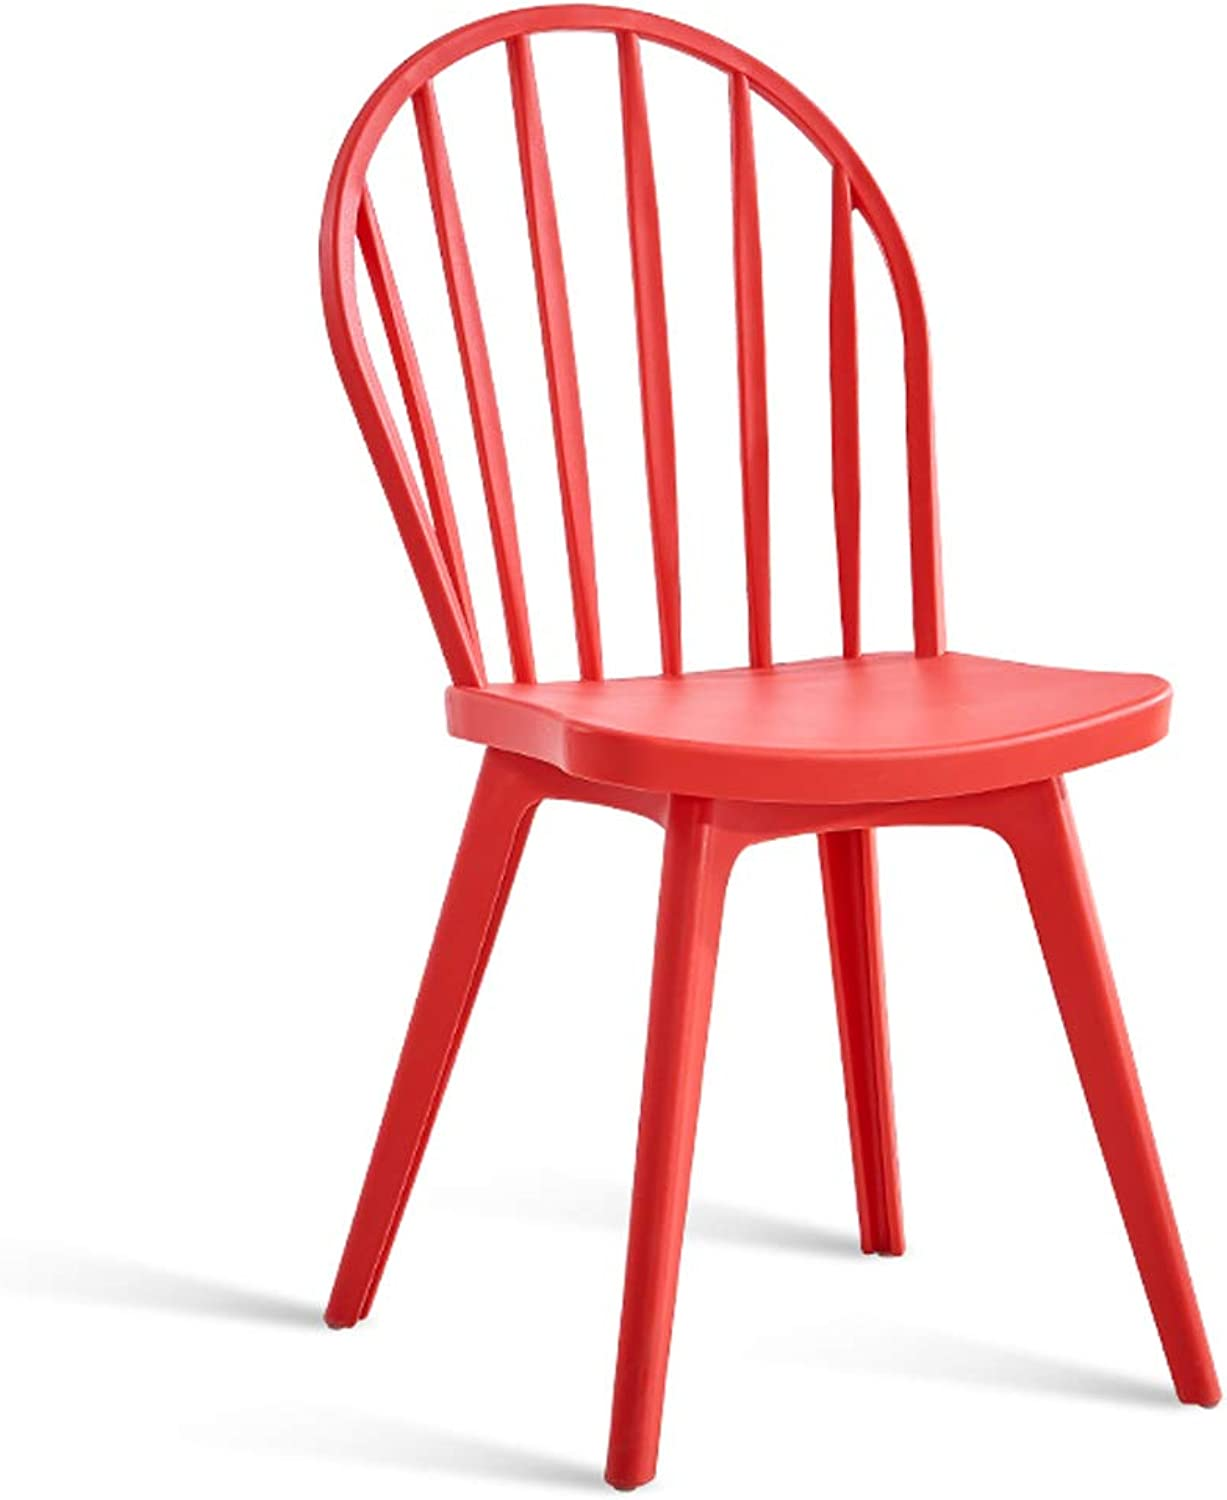 LRW Modern Minimalist Restaurant Home Dining Chair Adult Back Chair Nordic Creative Fashion Back Stool, Red